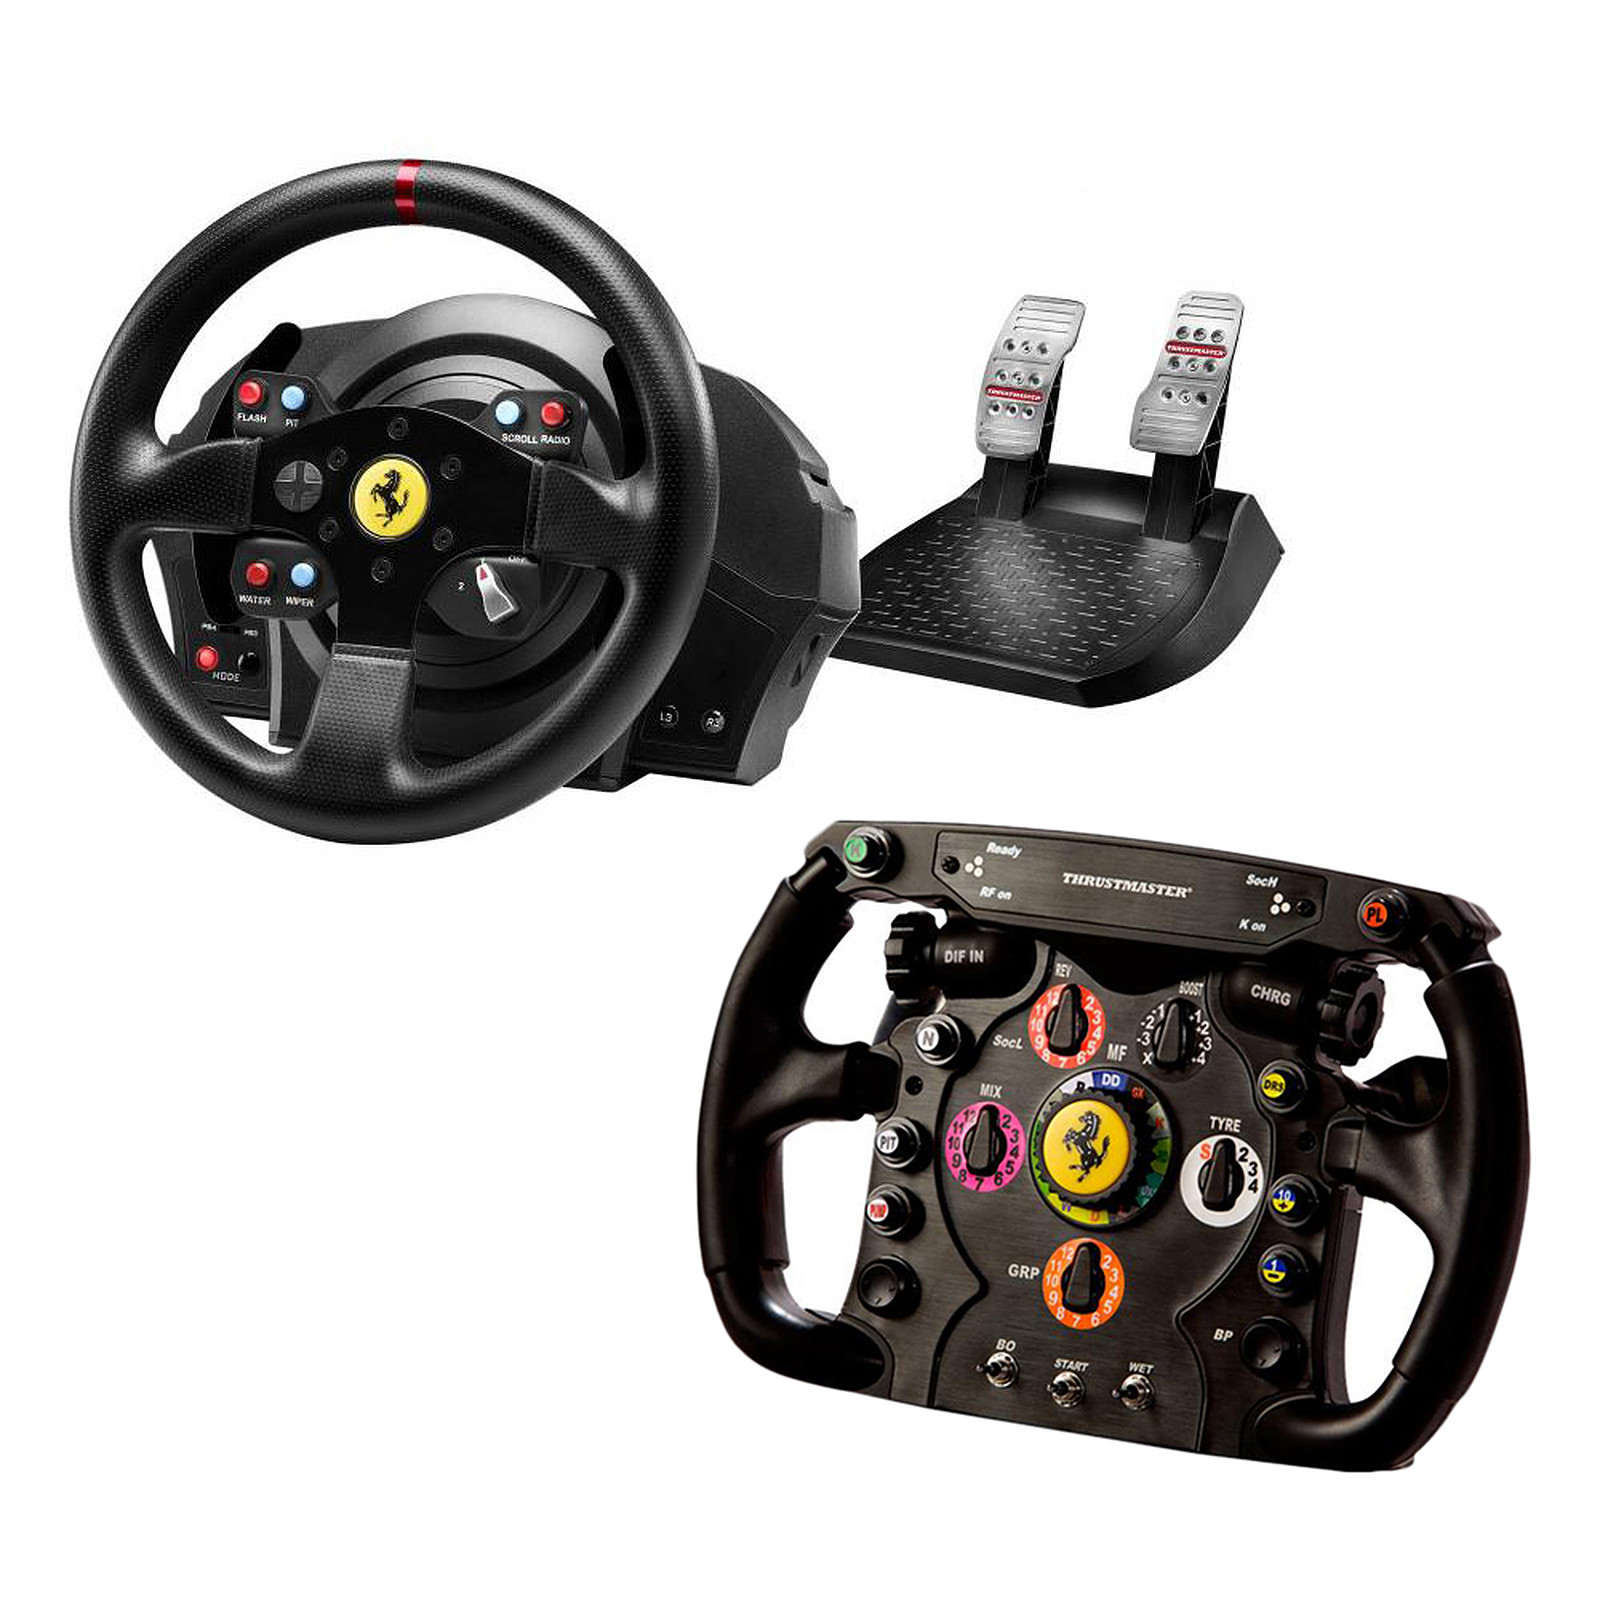 thrustmaster t300 ferrari gte wheel ferrari f1 wheel add. Black Bedroom Furniture Sets. Home Design Ideas